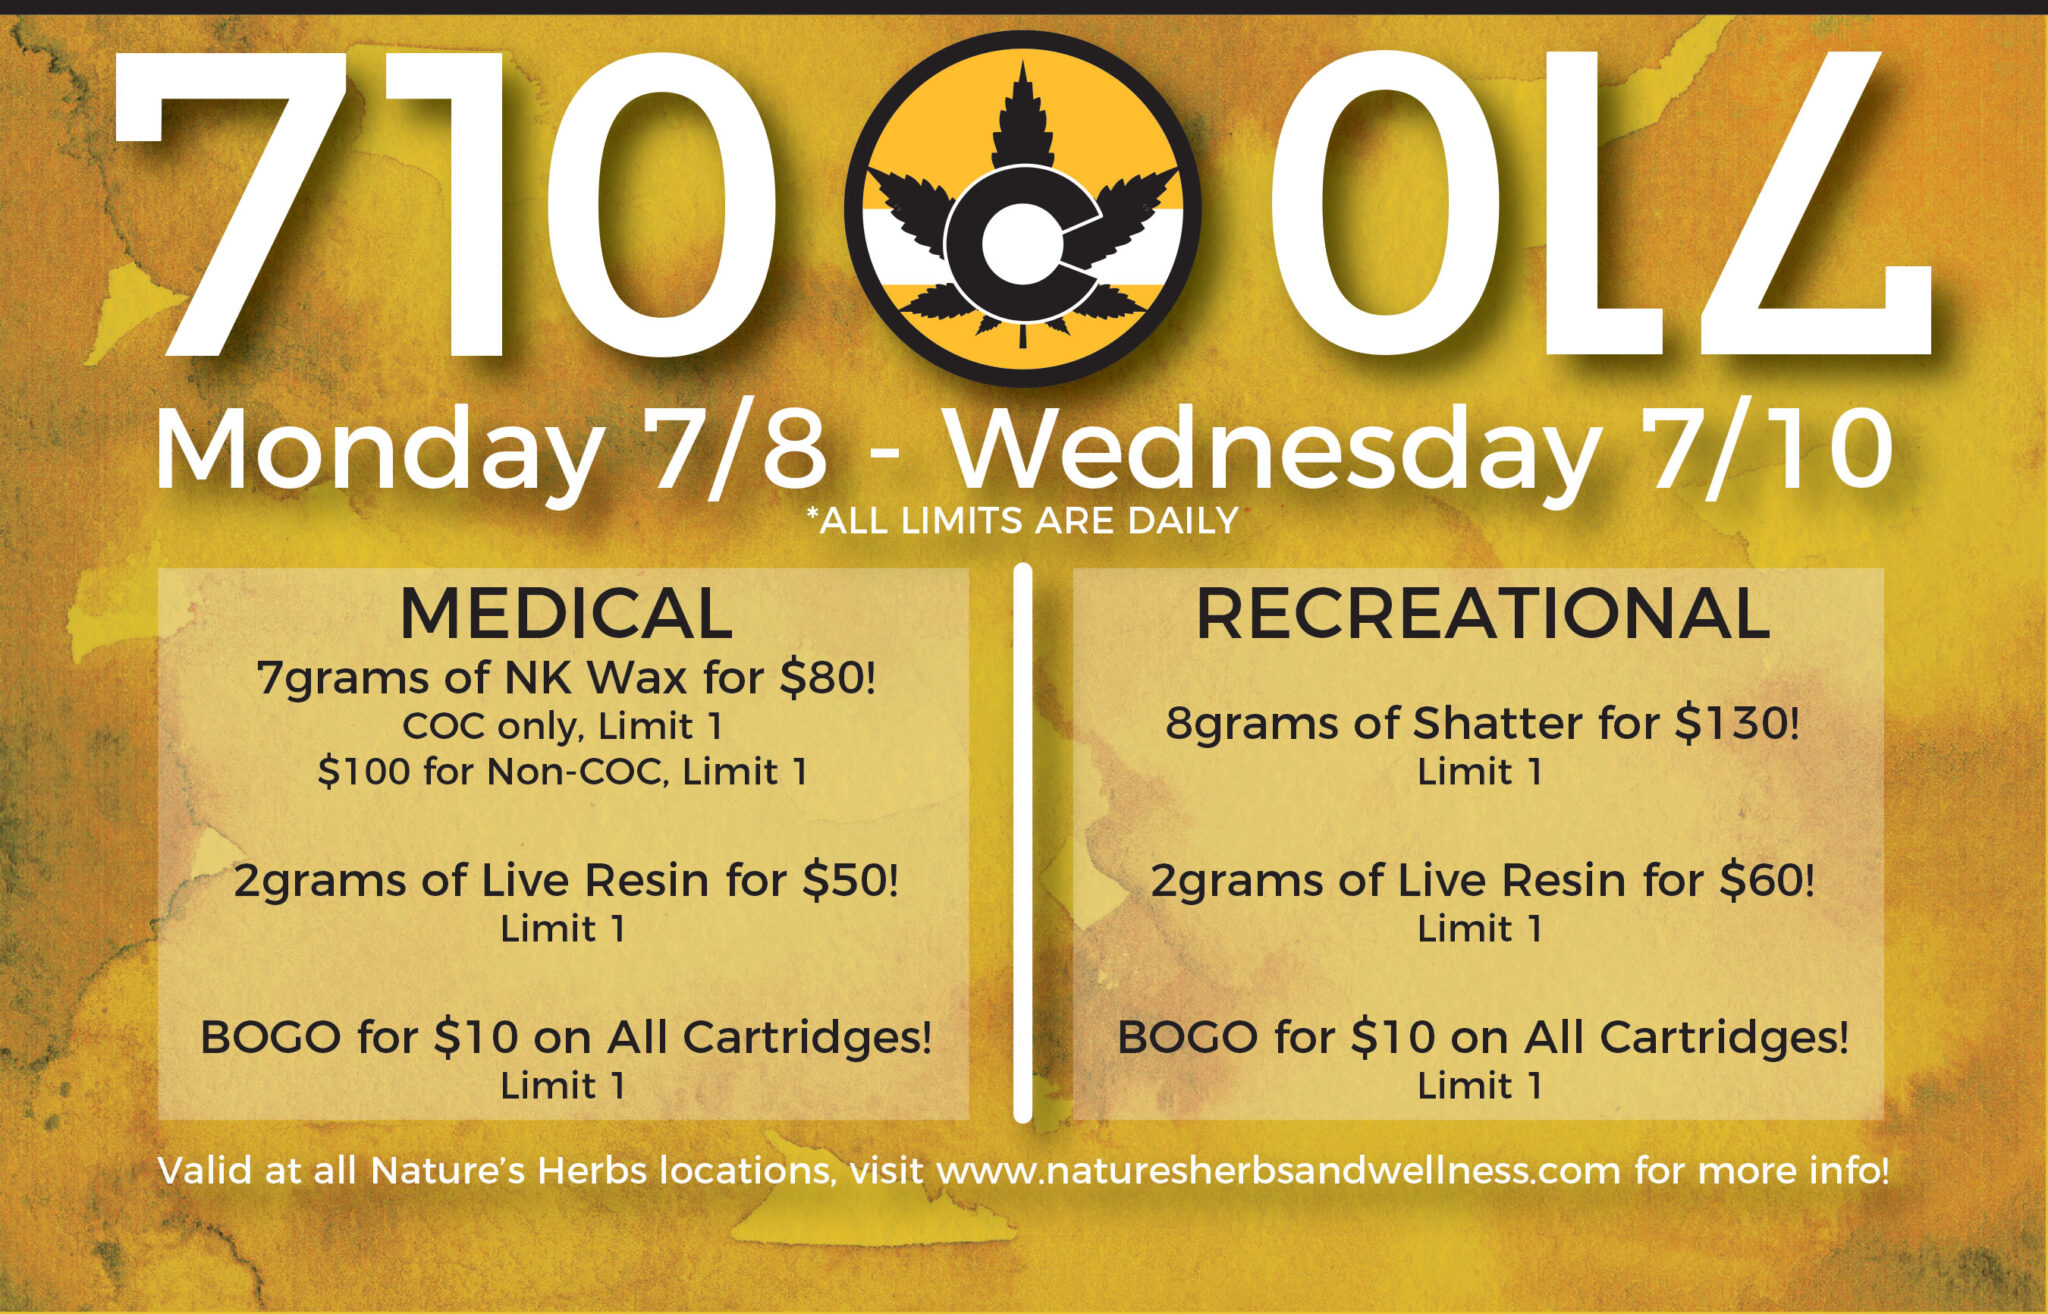 Natures Herbs and Wellness | 710 OIL Sales